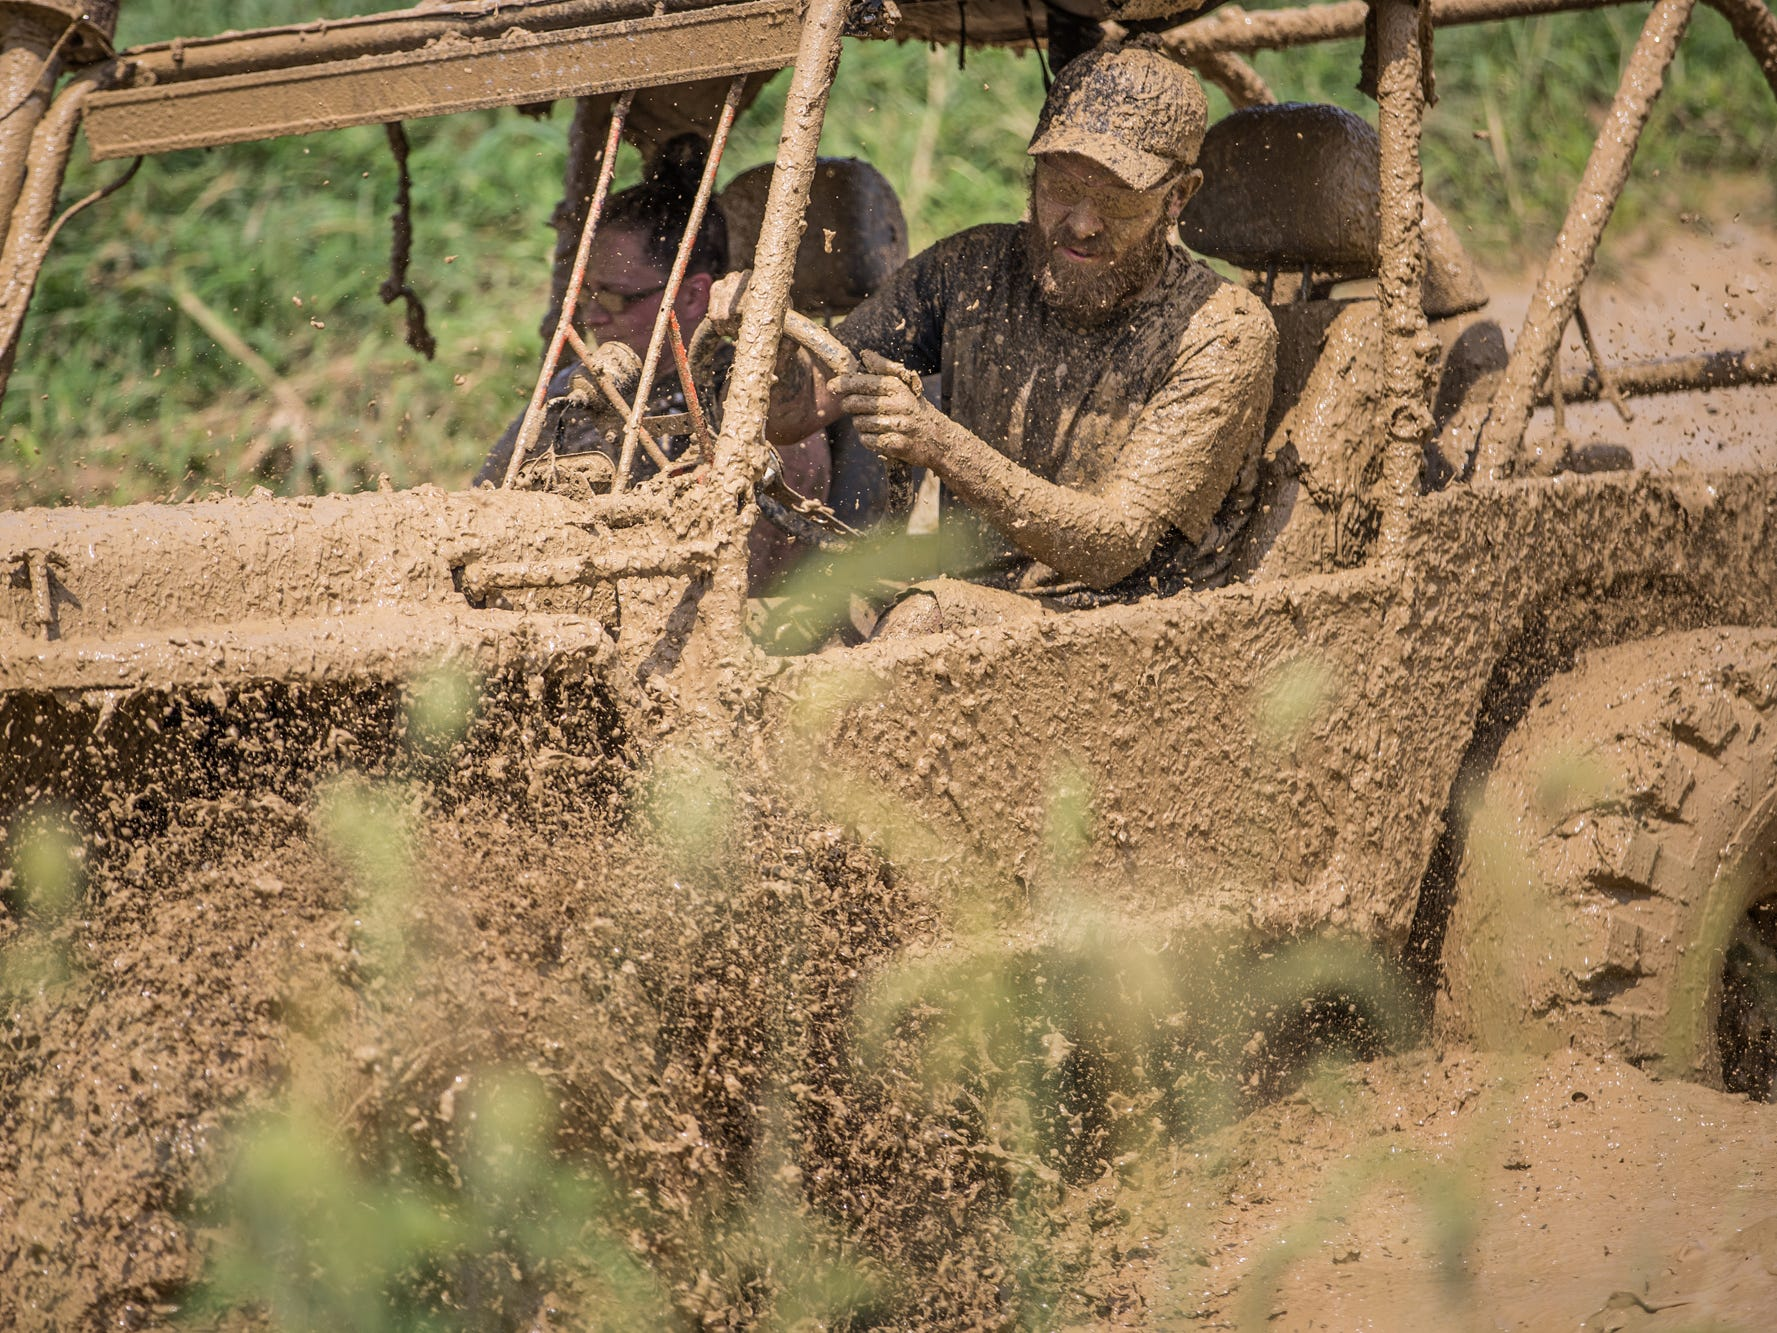 A couple takes a Jeep through a mud pit during the Redneck Rave at BlackSwan Mudpit in Medora, Ind., on Friday, July 20, 2018.